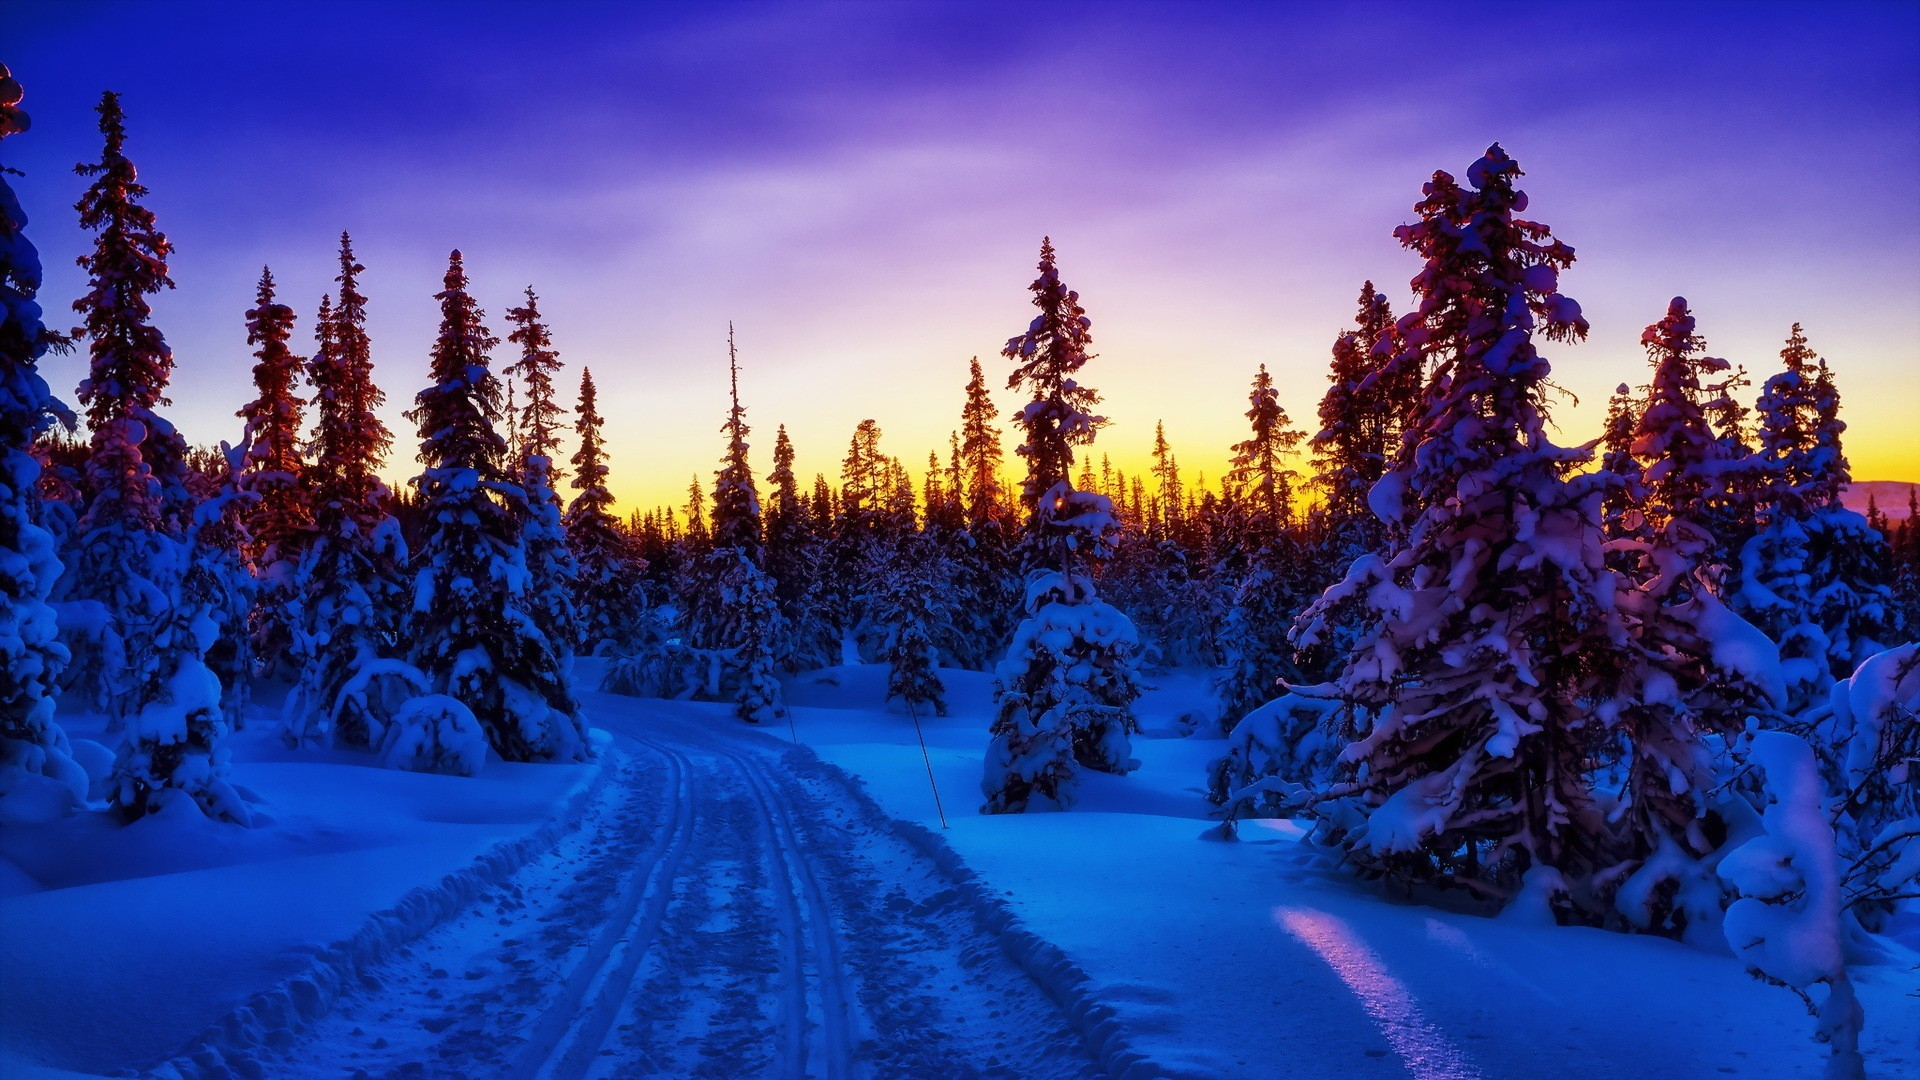 Forests – Winter Forest Fabulous Sunrise Road Blue Wallpaper Background for  HD 16:9 High